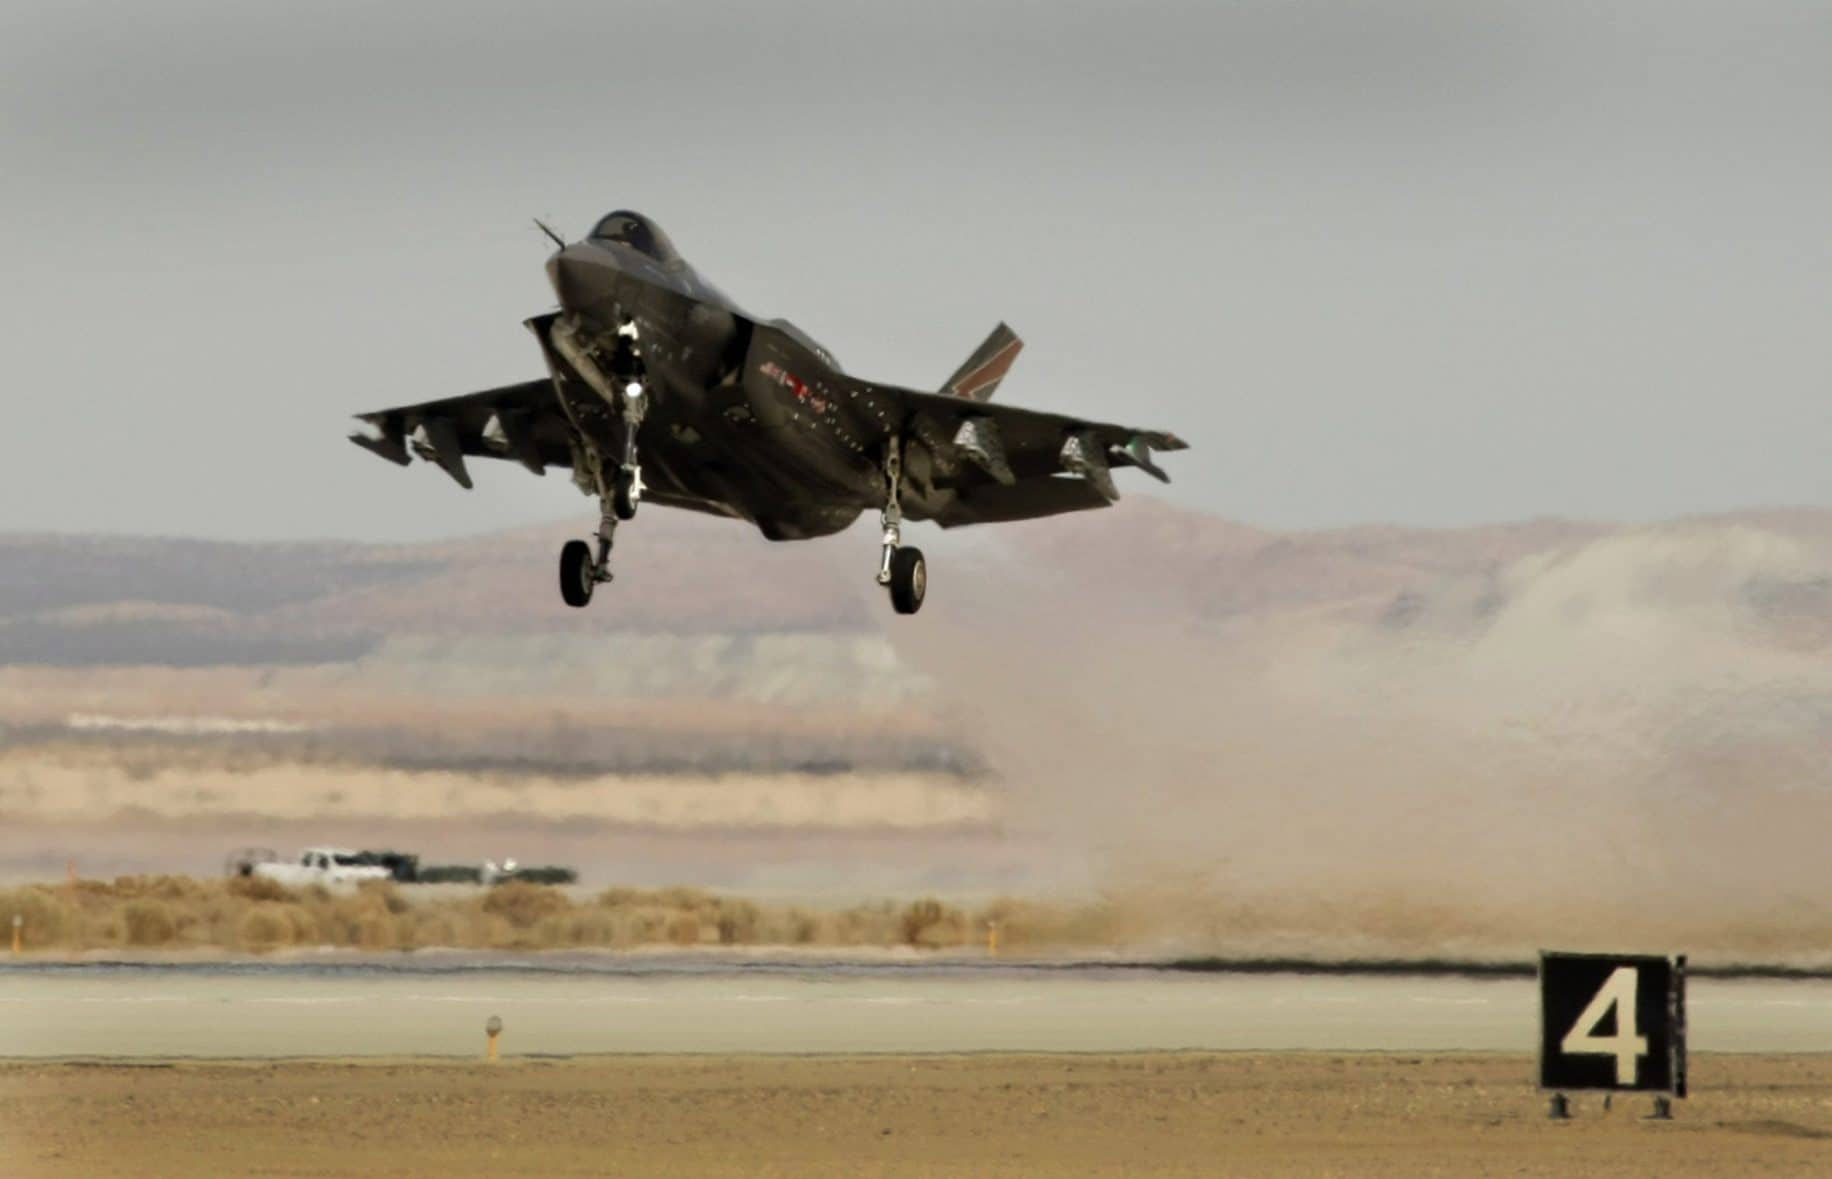 Report: More than 1,000 Madison homes would be 'incompatible for residential use' with F-35 jets